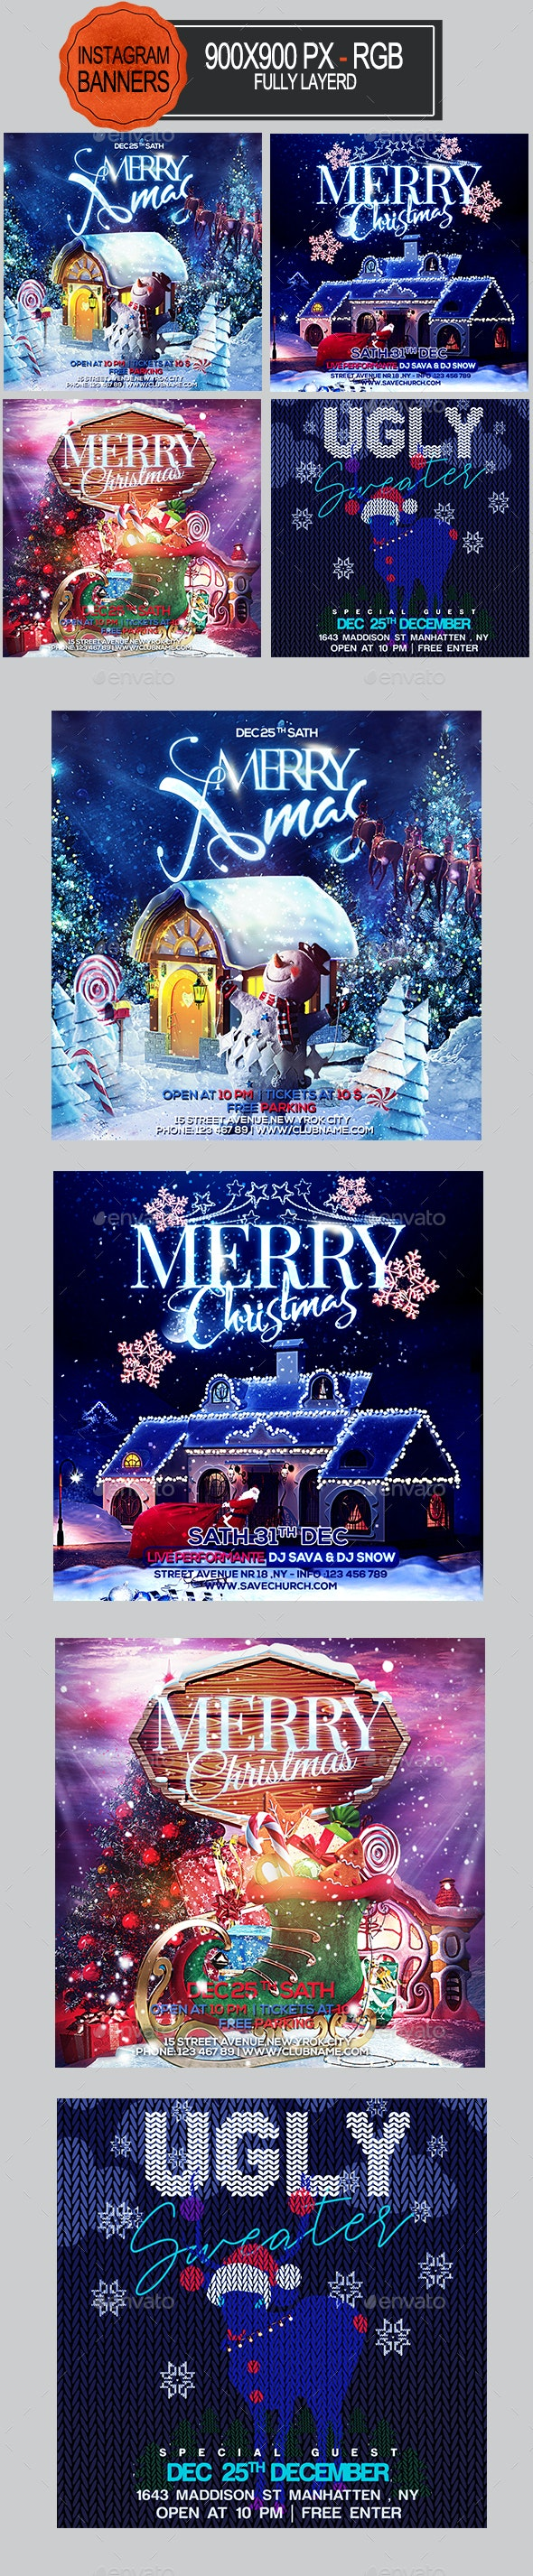 Christmas Instagram Banners - Banners & Ads Web Elements